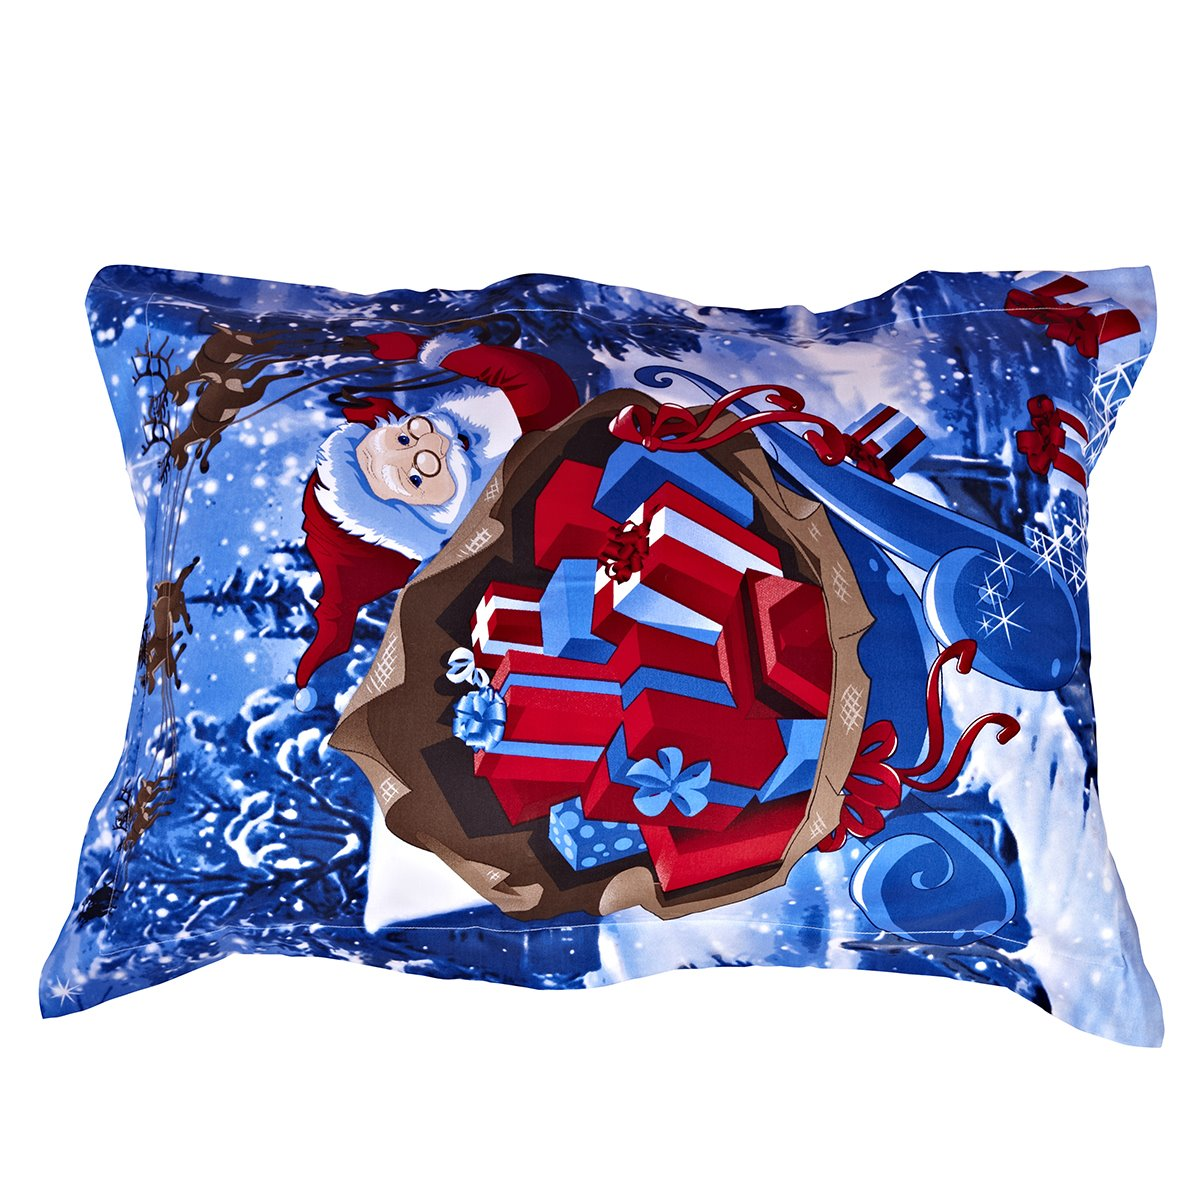 Christmas Gift Red Santa Claus Reactive Print One Pair Cotton Pillowcases 11349990